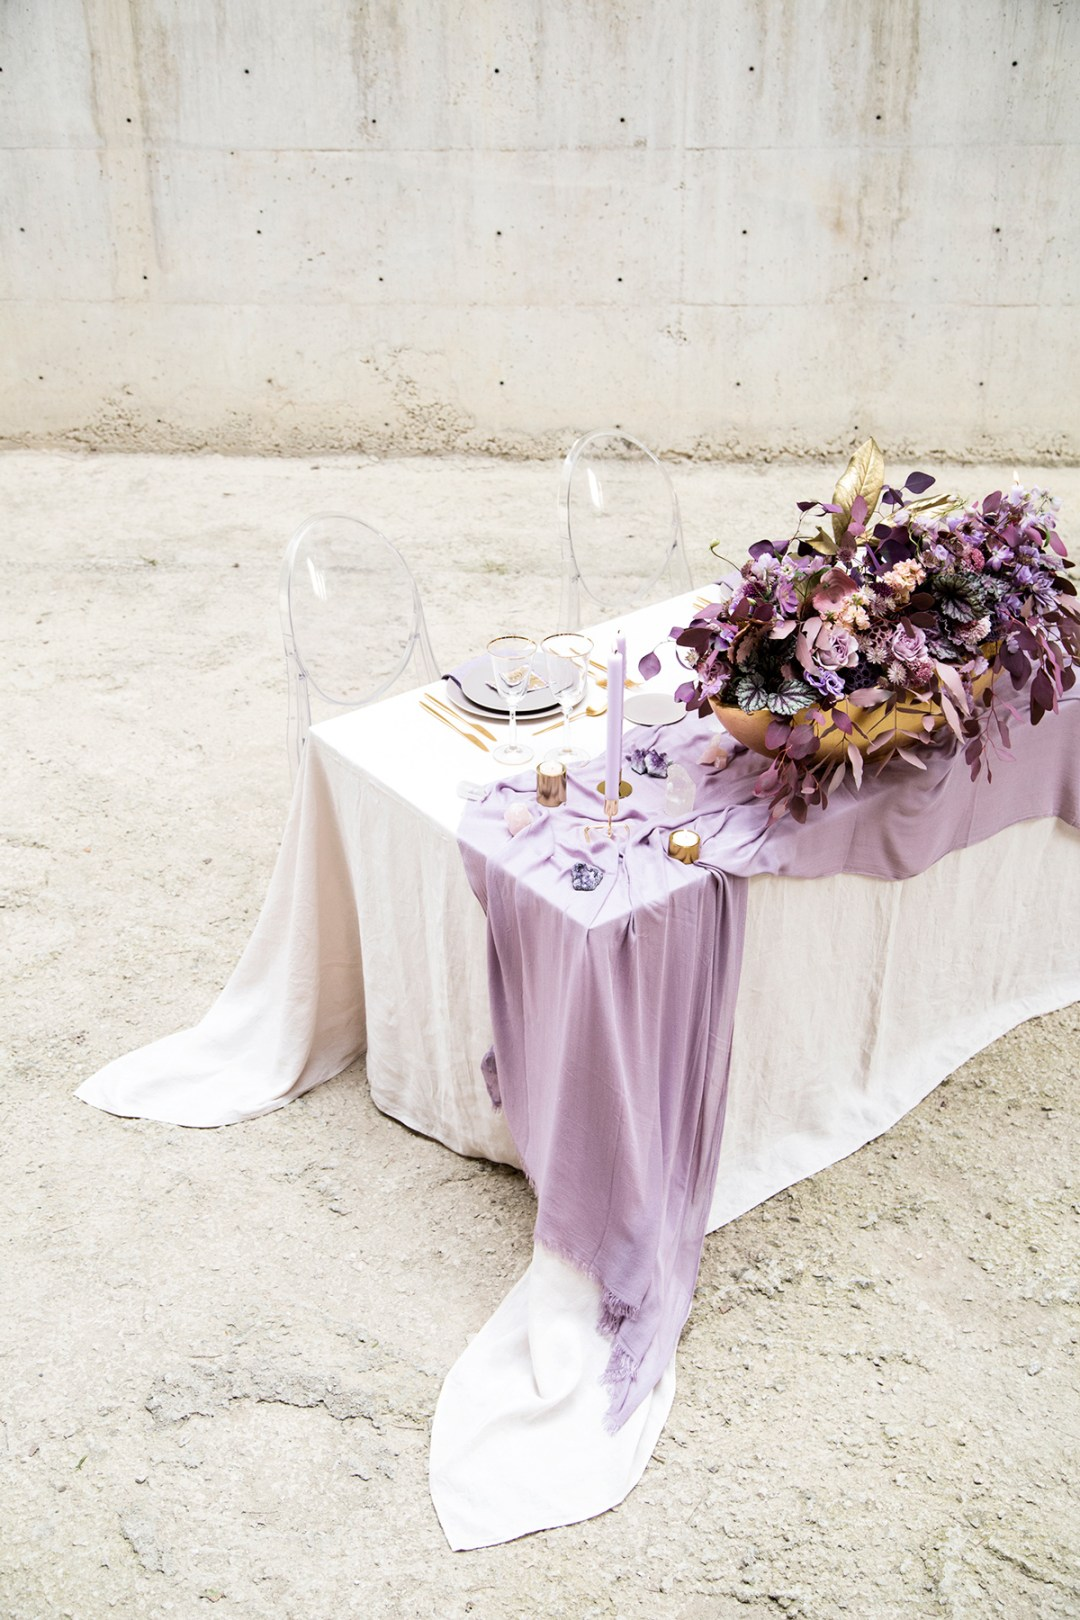 Lush-Amethyst-Wedding-Inspiration-4